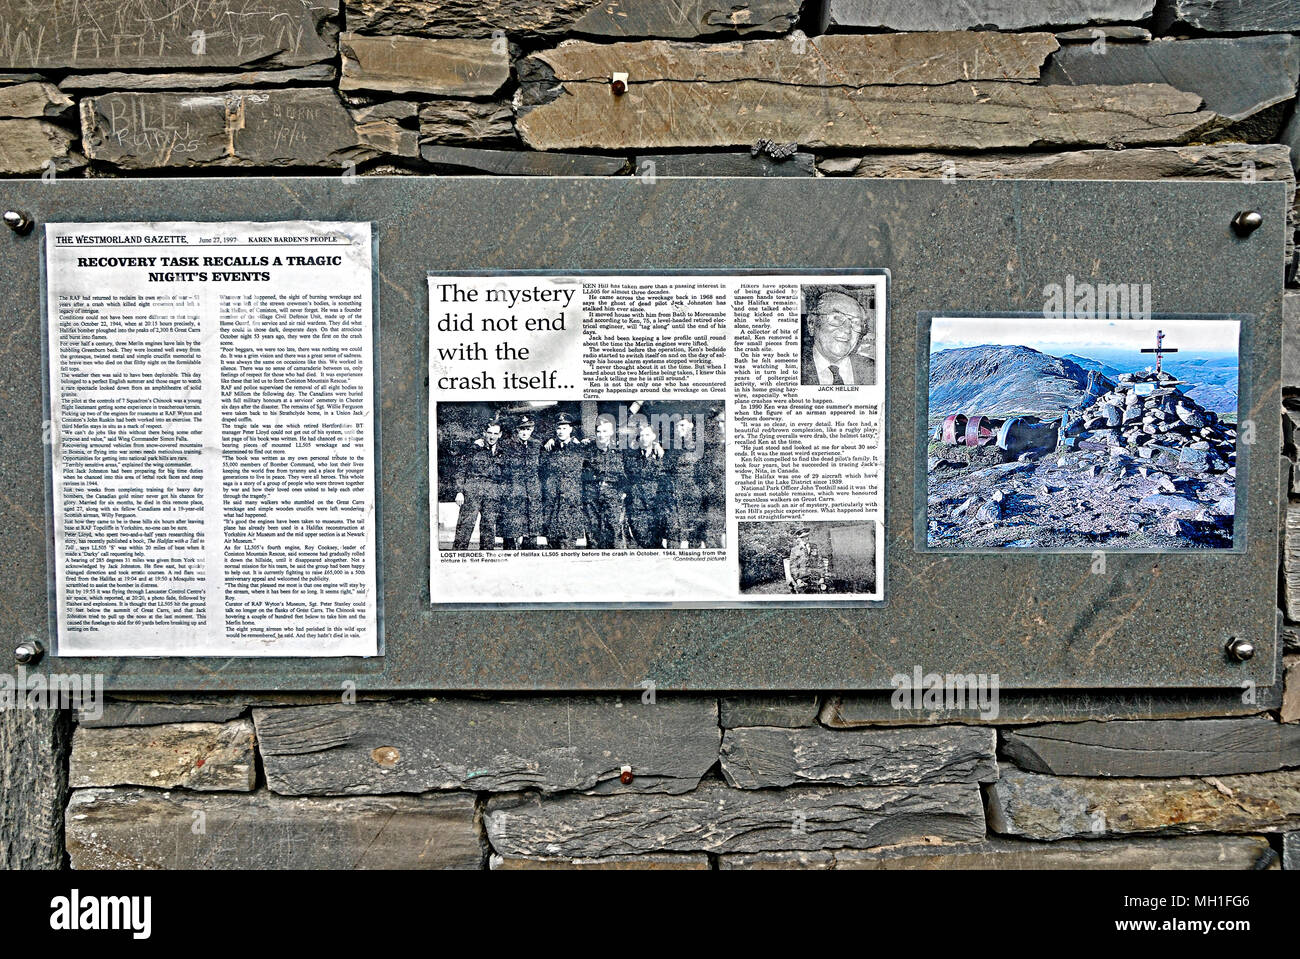 WW2 Bomber Crash Newspaper Clippings - Stock Image